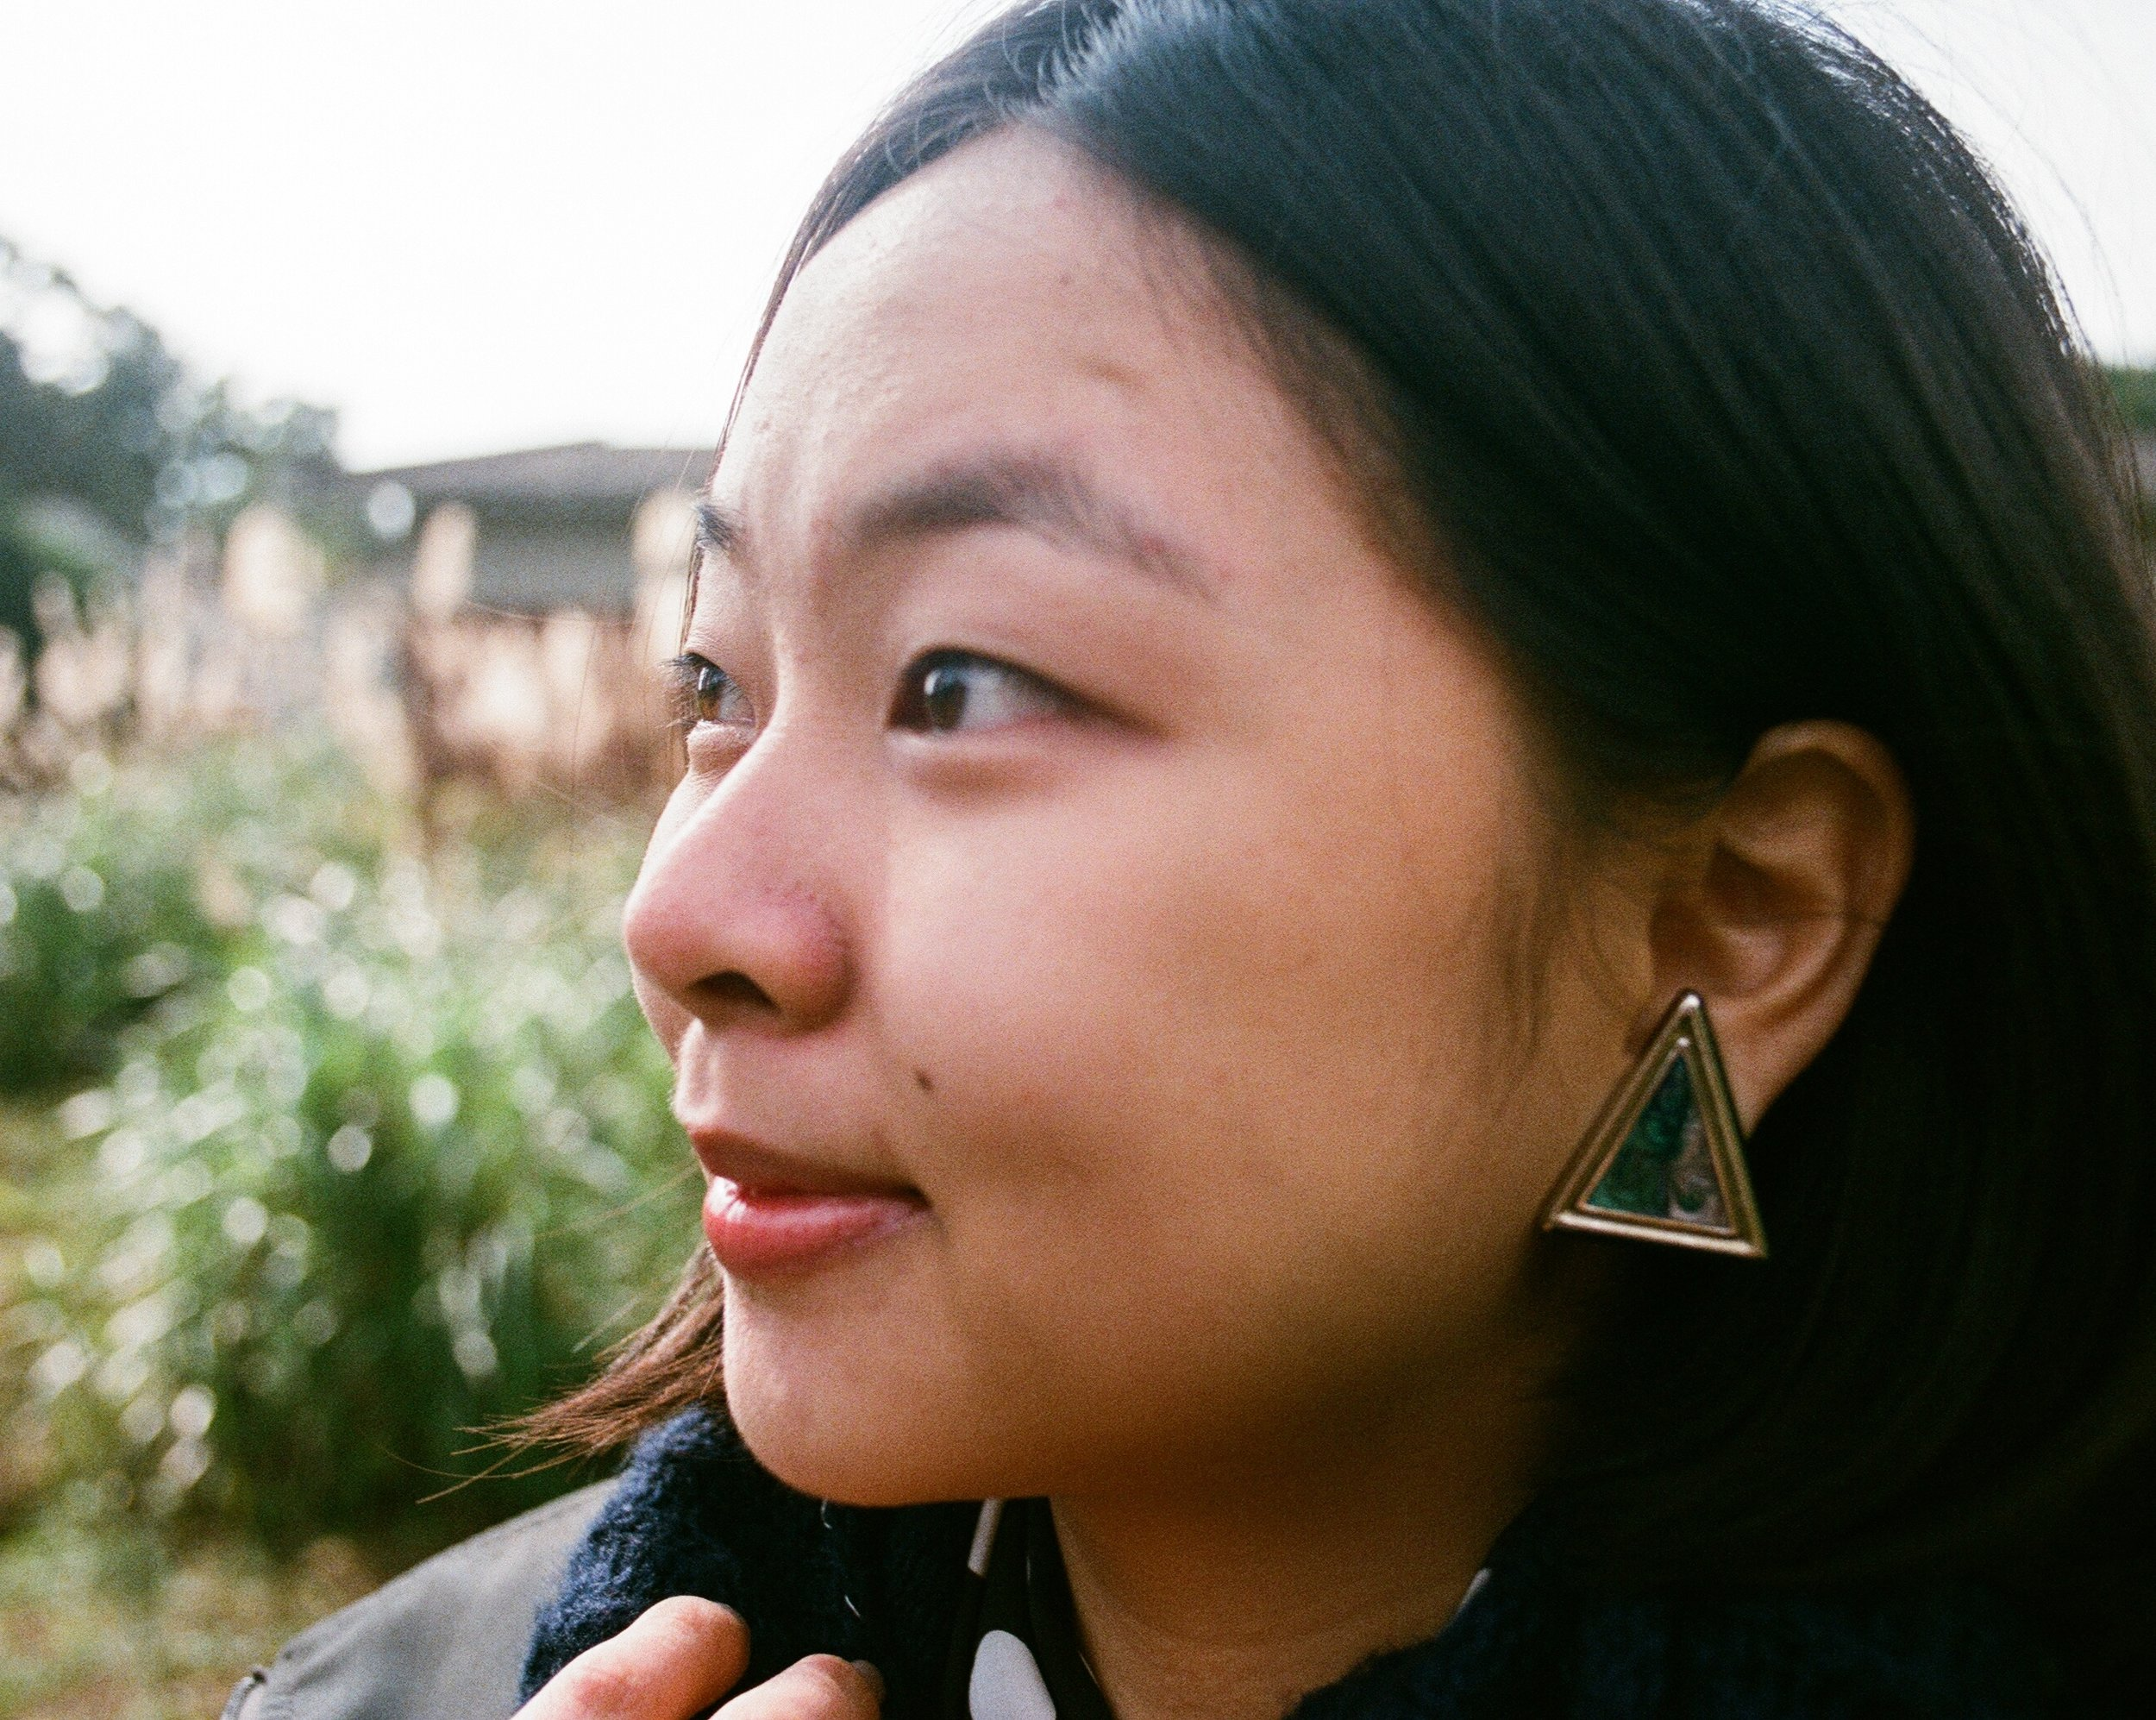 Yen Yen Chou  is a Taiwanese artist now based in Brooklyn, New York. She had received scholarships and the MFA degree from Pratt Institute in May 2018. Her work has been exhibited at The Boiler I Pierogi Gallery, Tiger Strikes Asteroid, and in different group shows in the United States.